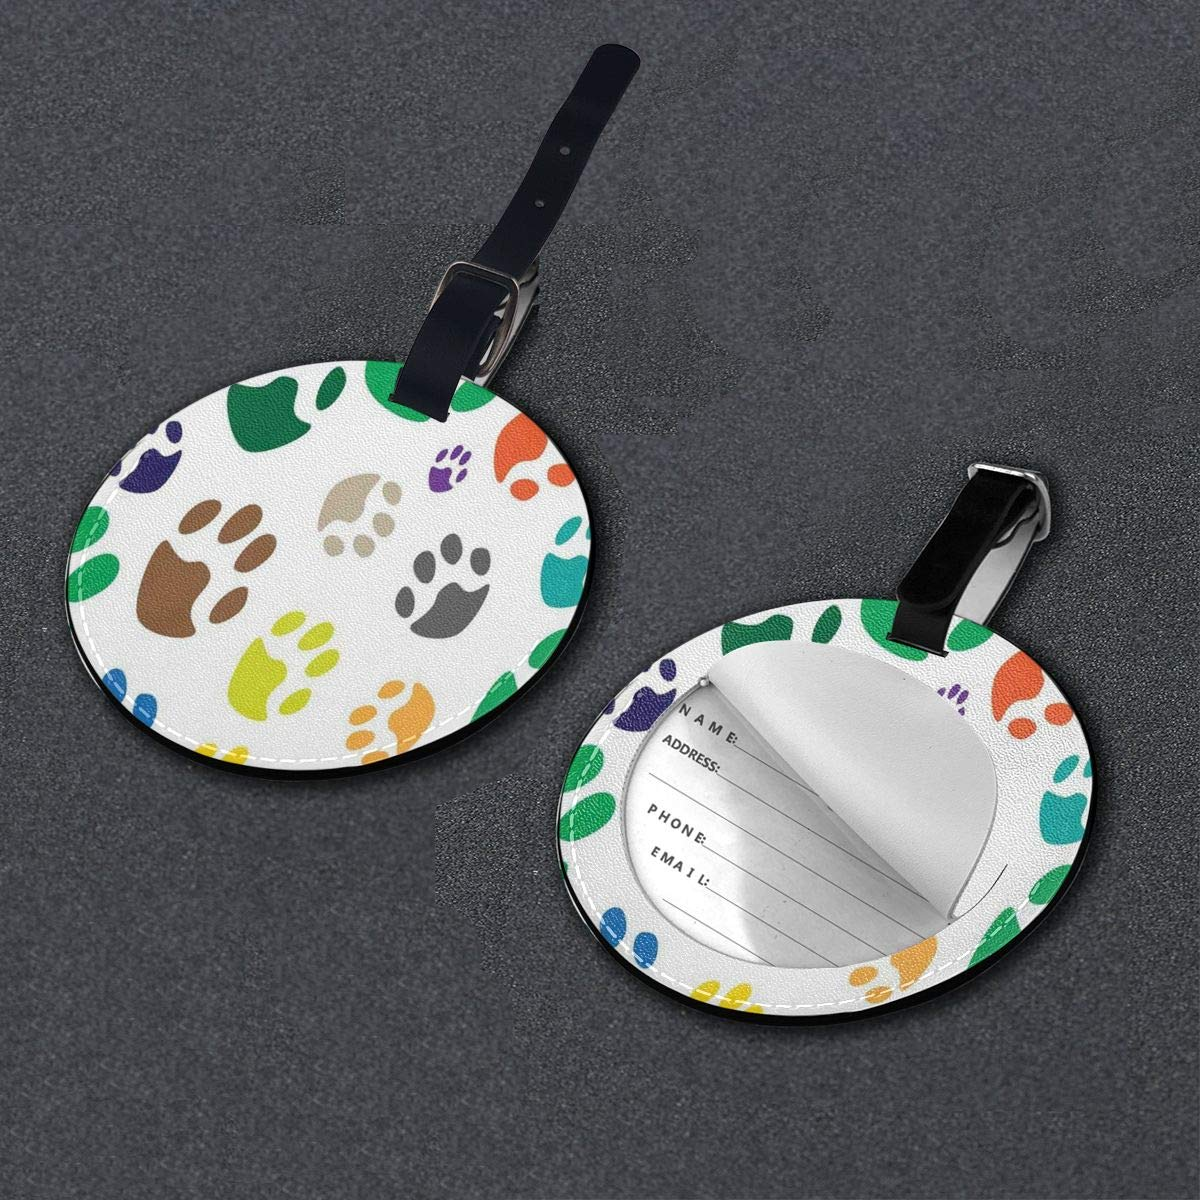 Round Luggage Tags Bright Colored Cat Paw Children PU Leather Suitcase Labels Bag